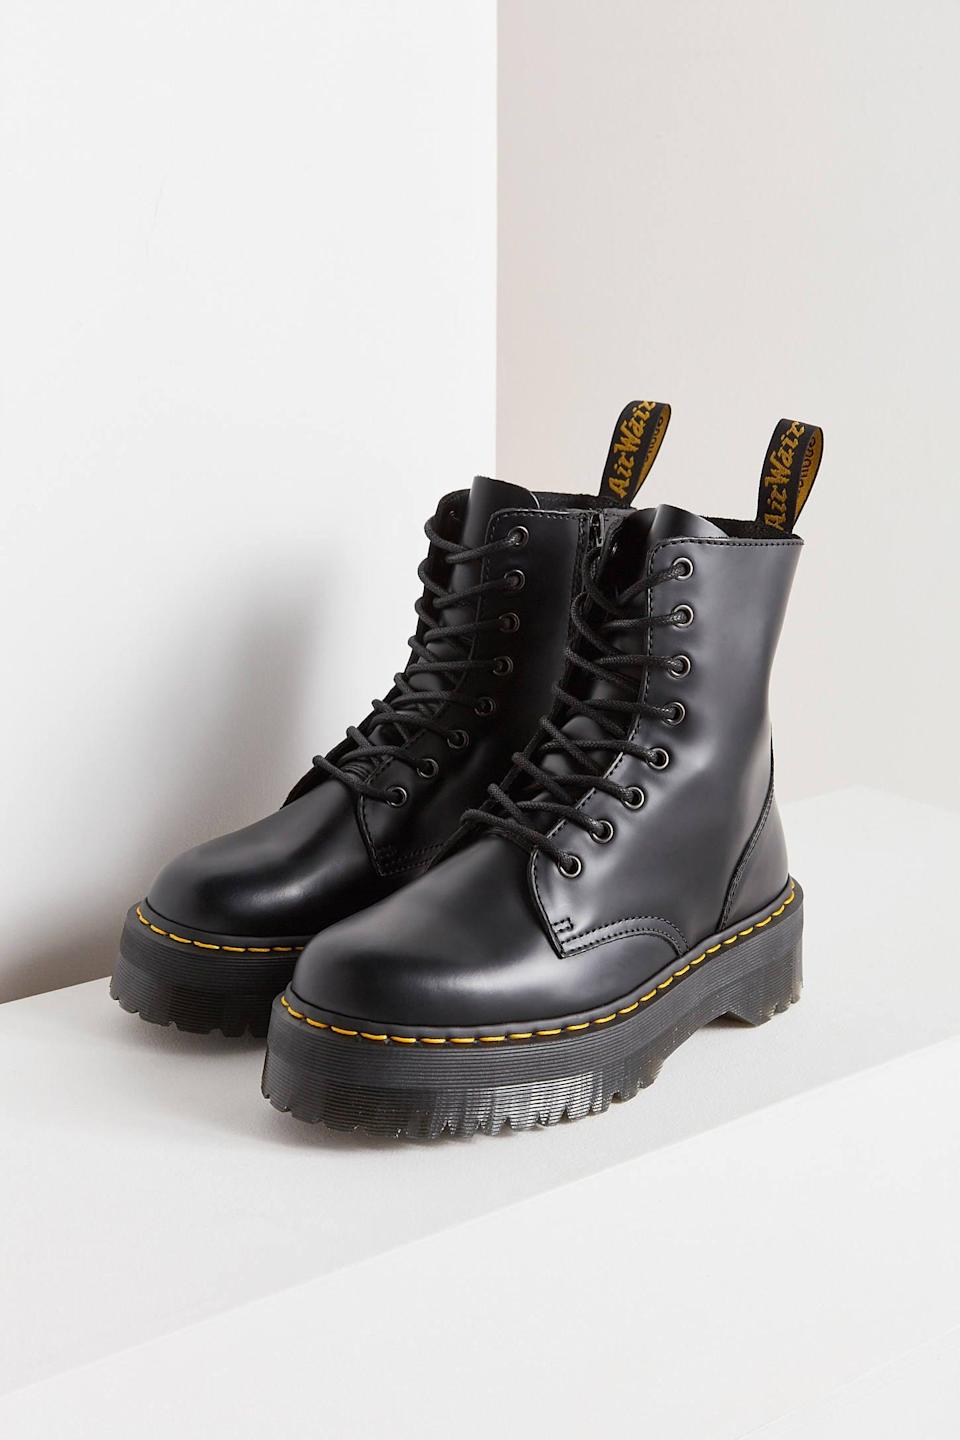 <p>These <span>Dr. Martens Jadon Platform 8-Eye Boots</span> ($180) are timeless staples that have gotten a 2021 refresh. The platform is cool, and gives us the boost we're looking for in a boot.</p>